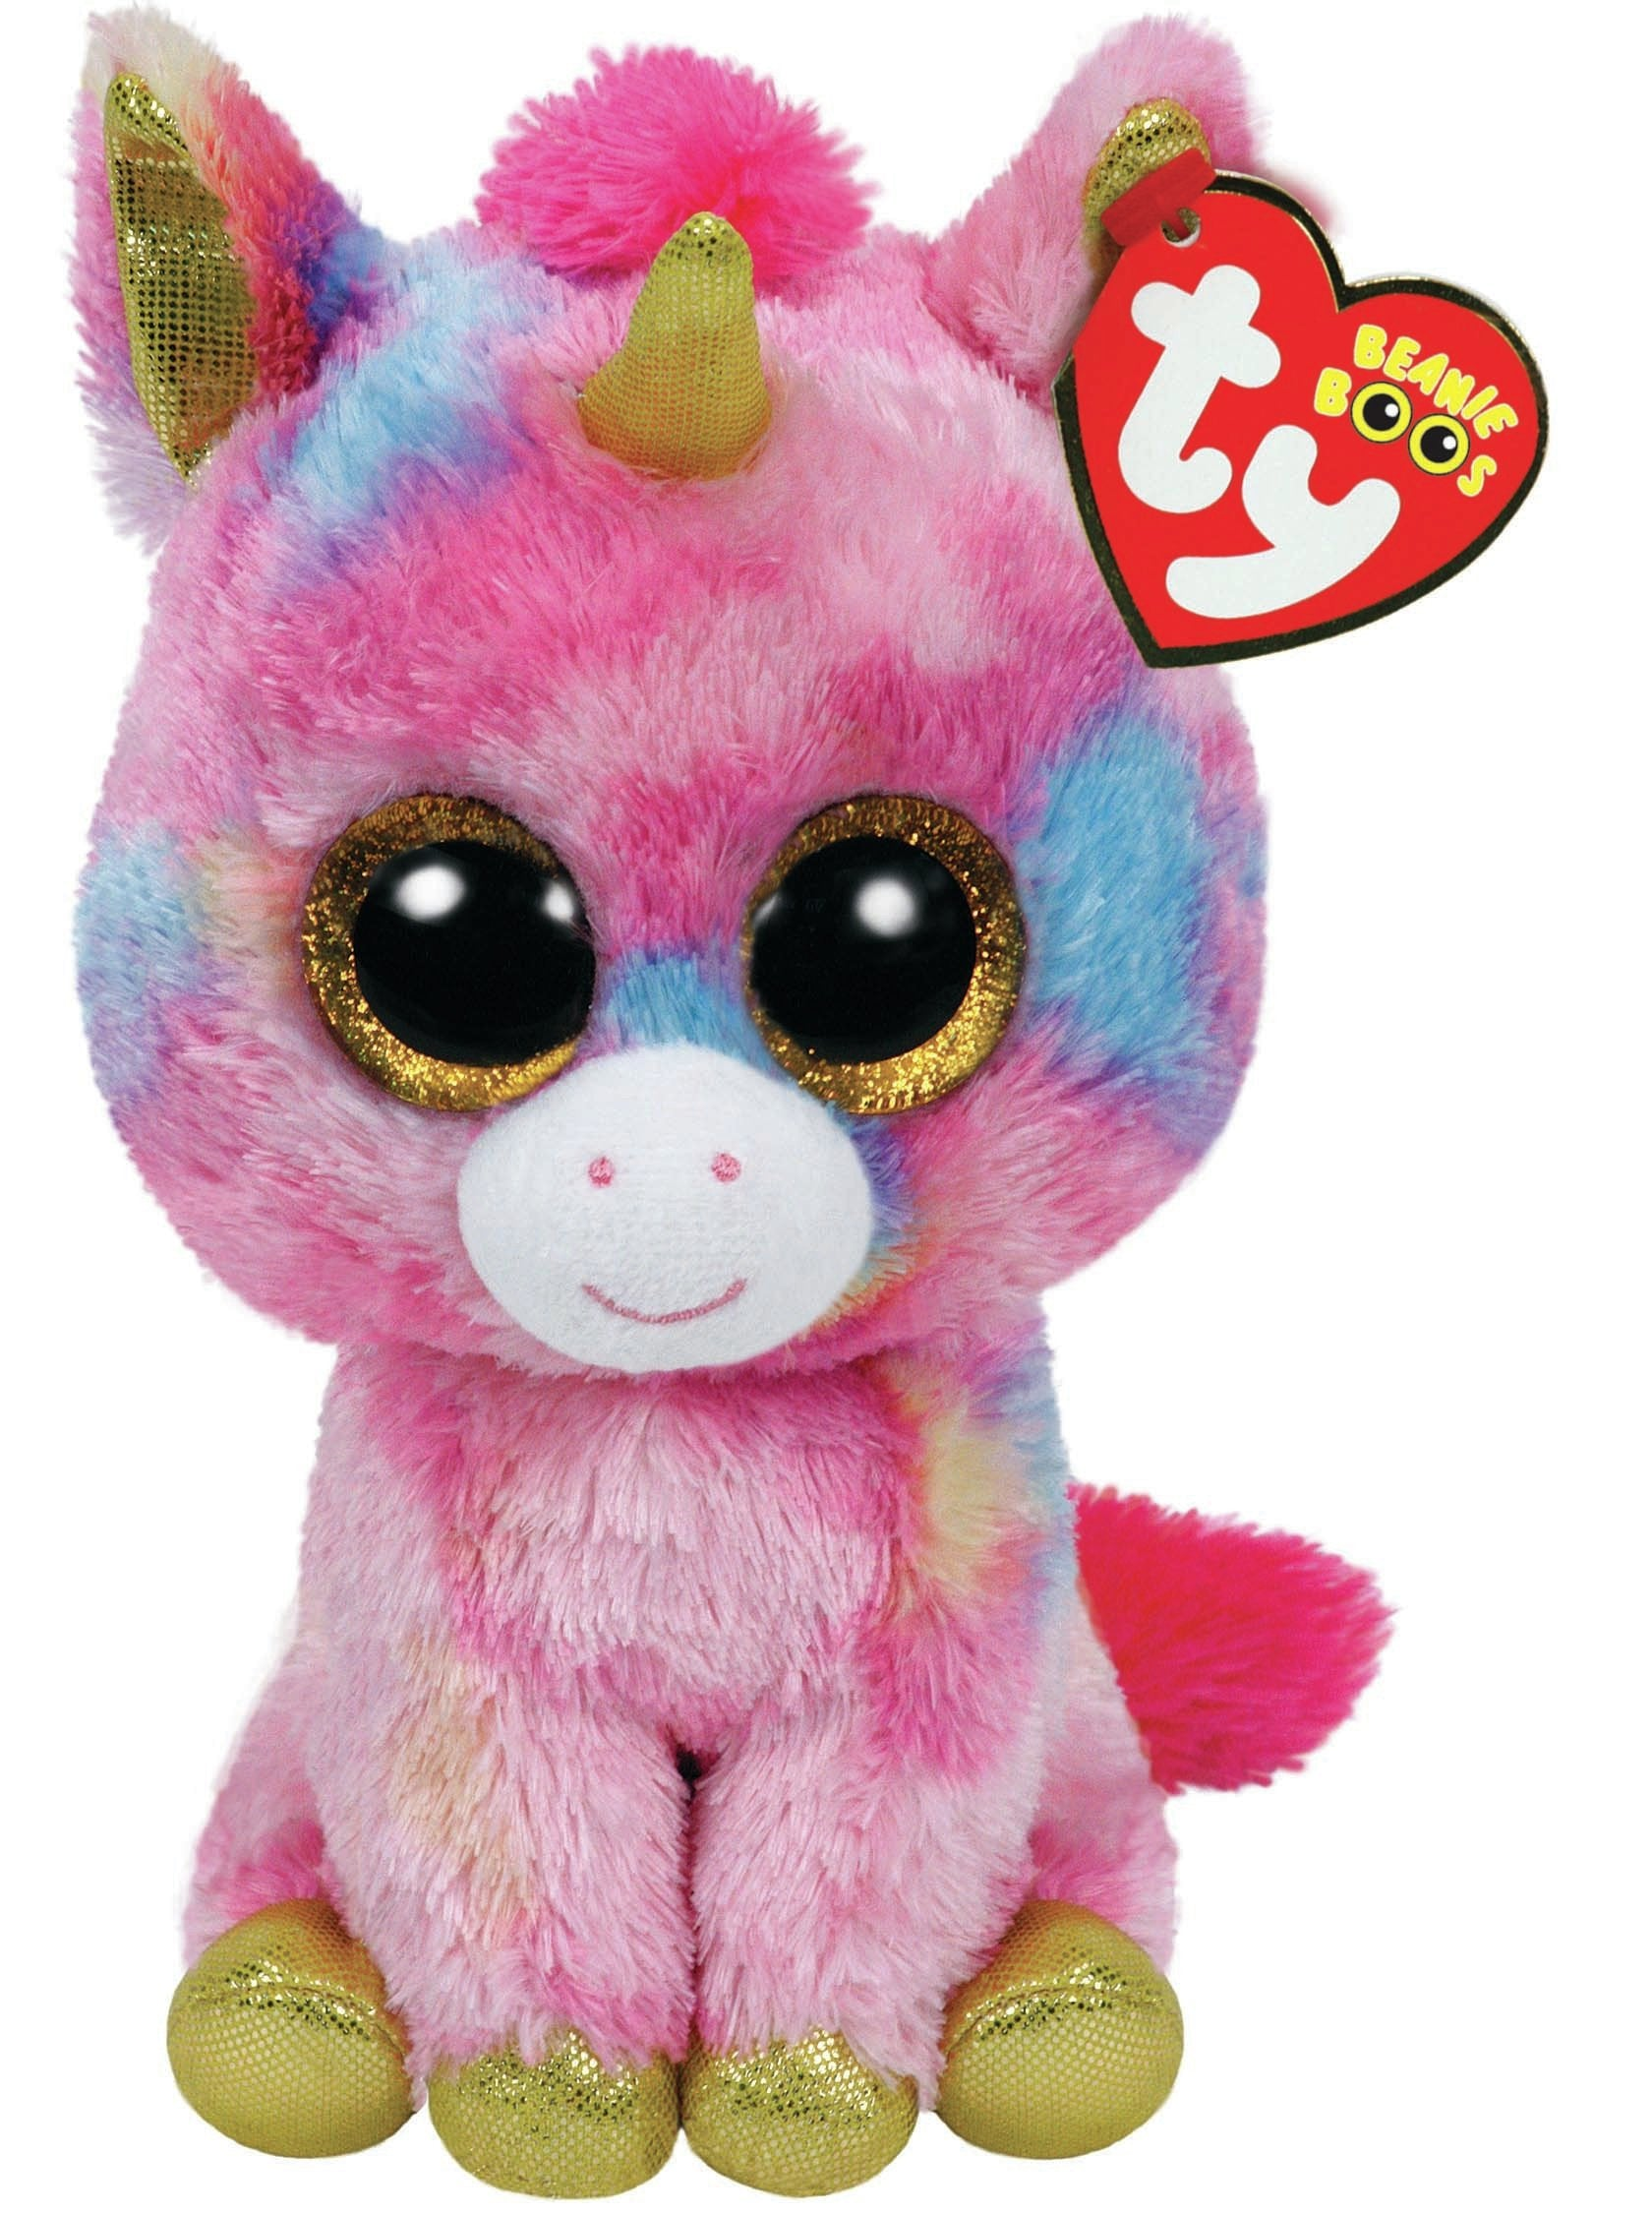 Ty Beanie Boo Plush Fantasia The Unicorn 15cm 15cm//5.9in